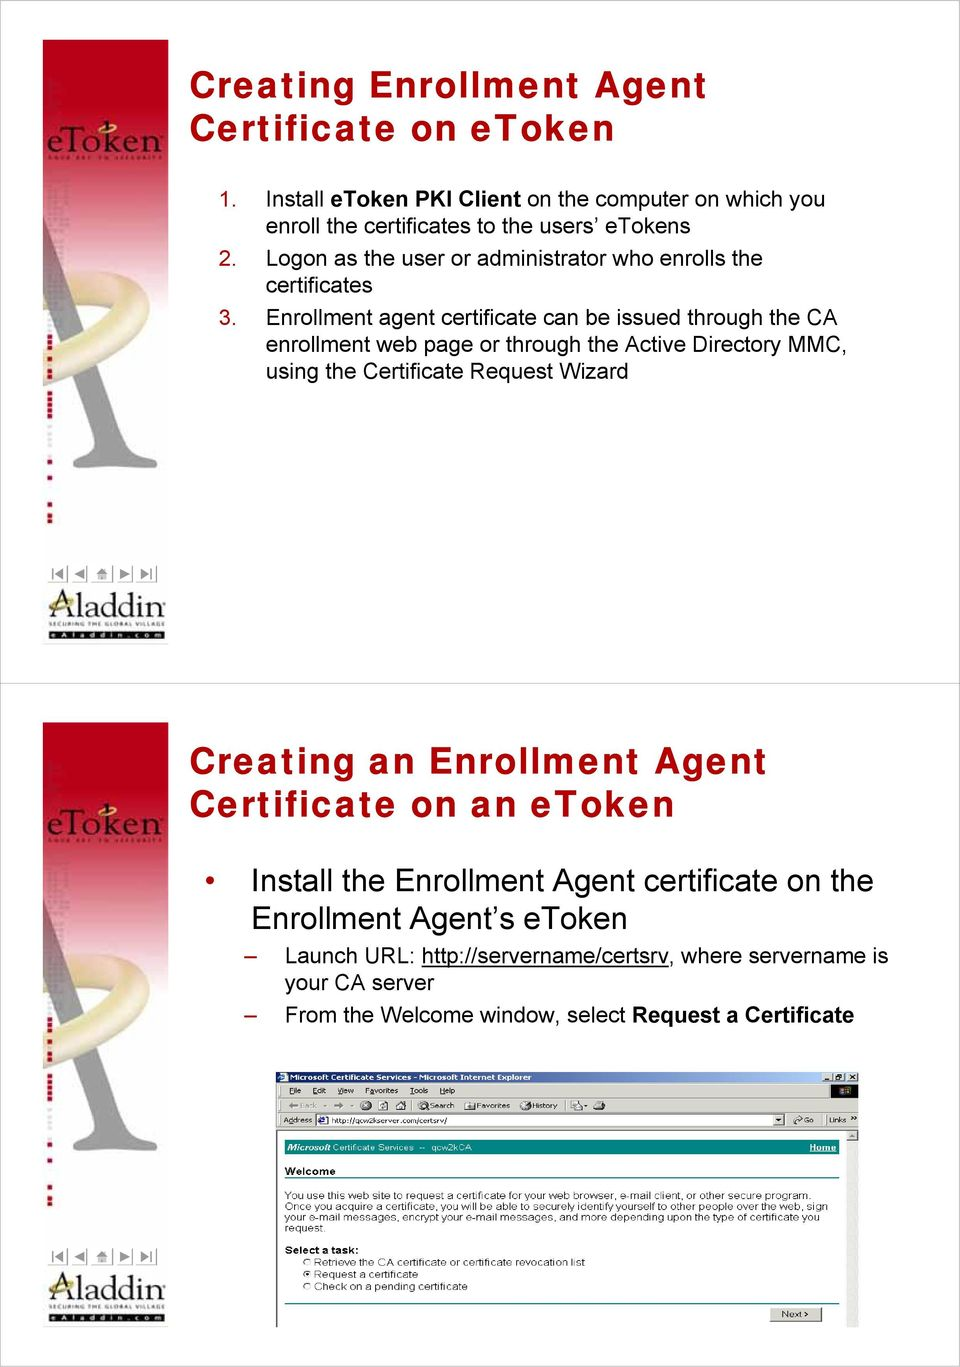 Enrollment agent certificate can be issued through the CA enrollment web page or through the Active Directory MMC, using the Certificate Request Wizard